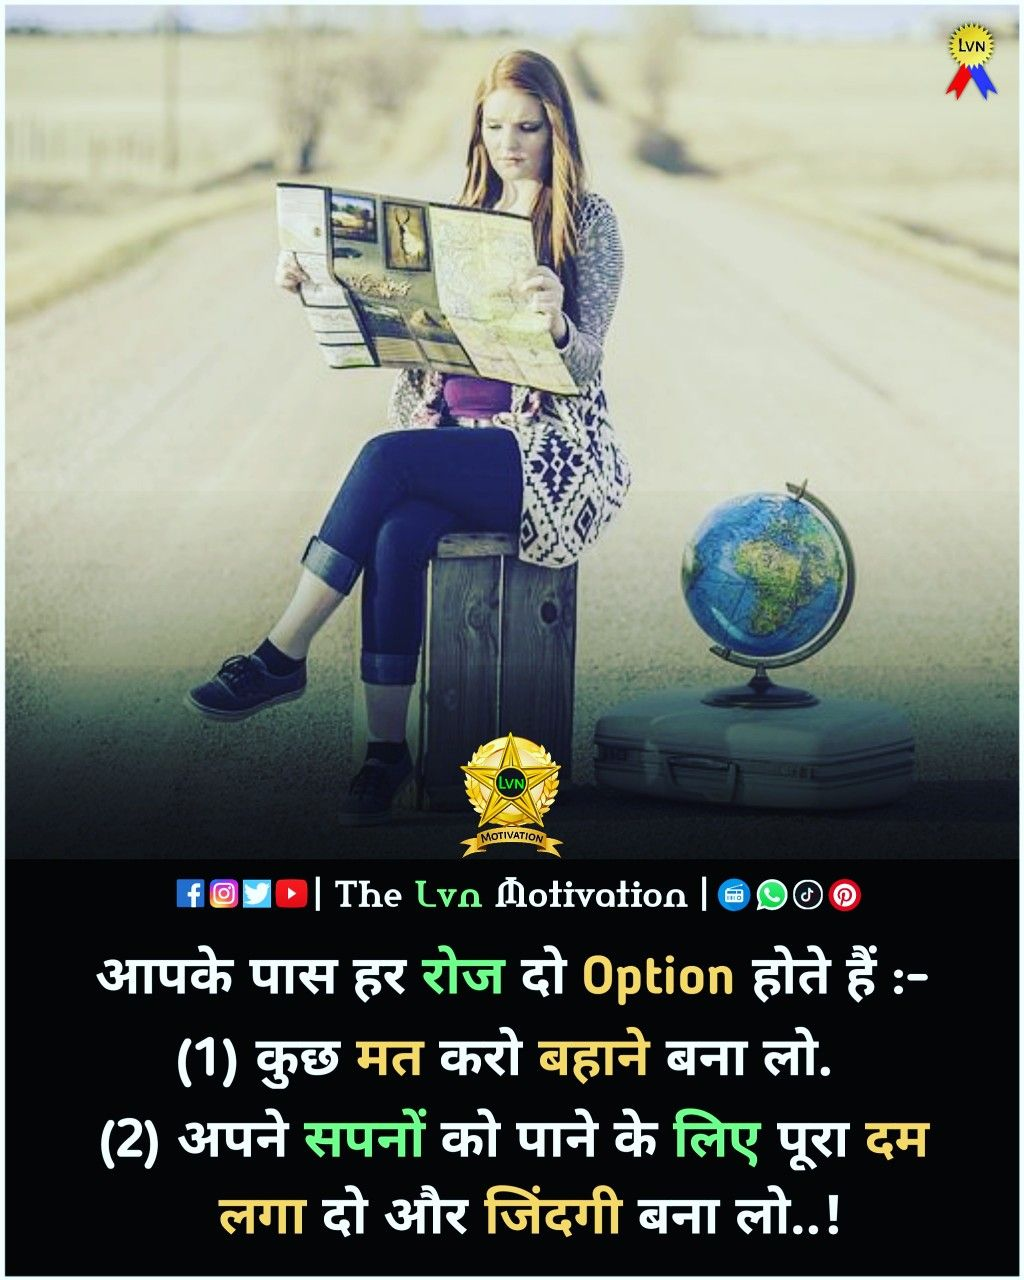 Dream Life Motivational Quotes In Hindi Motivatonal Quotes Exam Motivation Quotes Motivational Quotes In Hindi